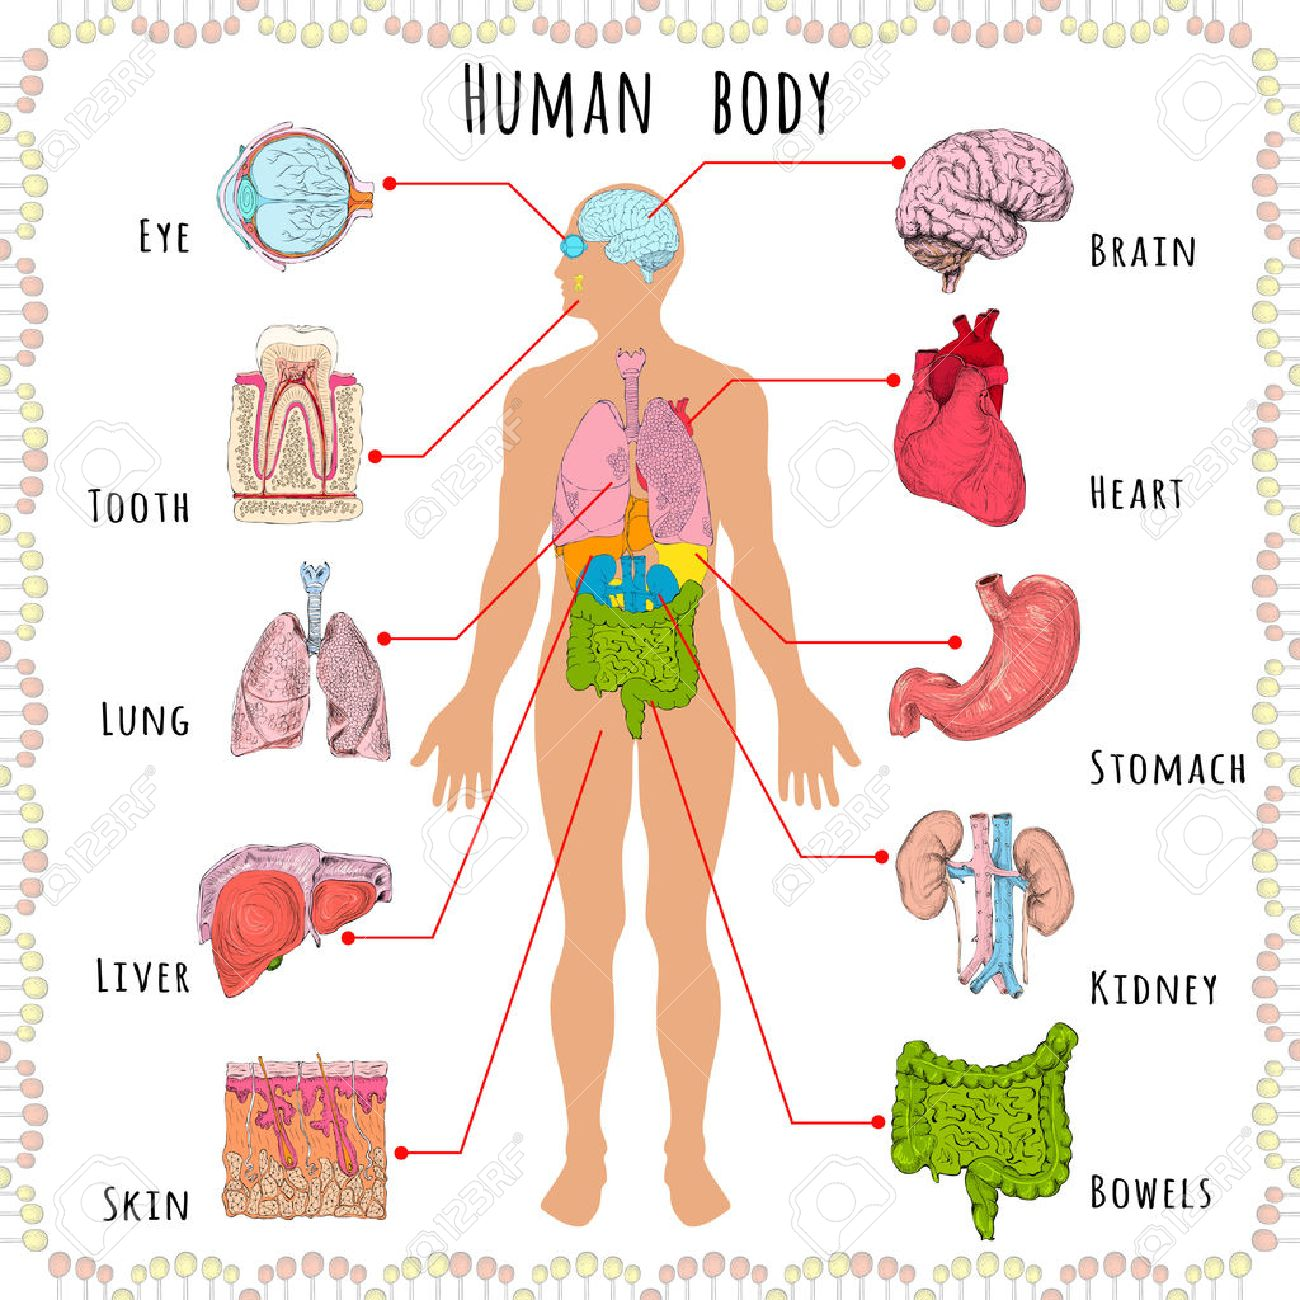 How Do Adjustments Help My Organs Function Better